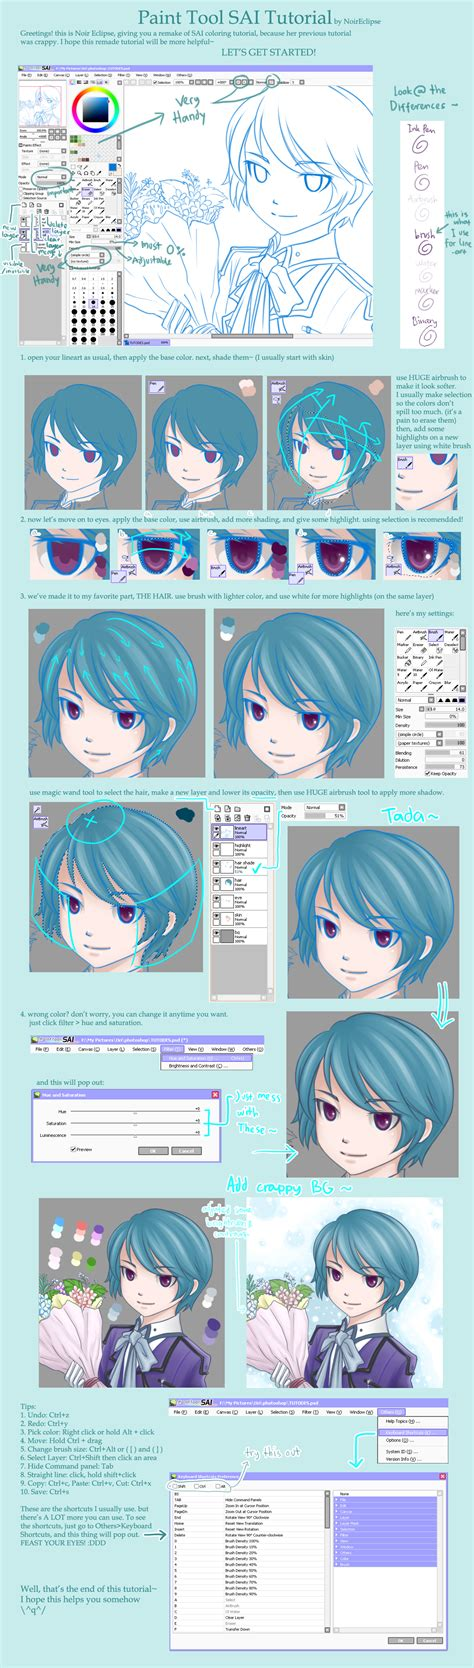 paint tool sai draw tutorial paint tool sai tutorial by noireclipse on deviantart